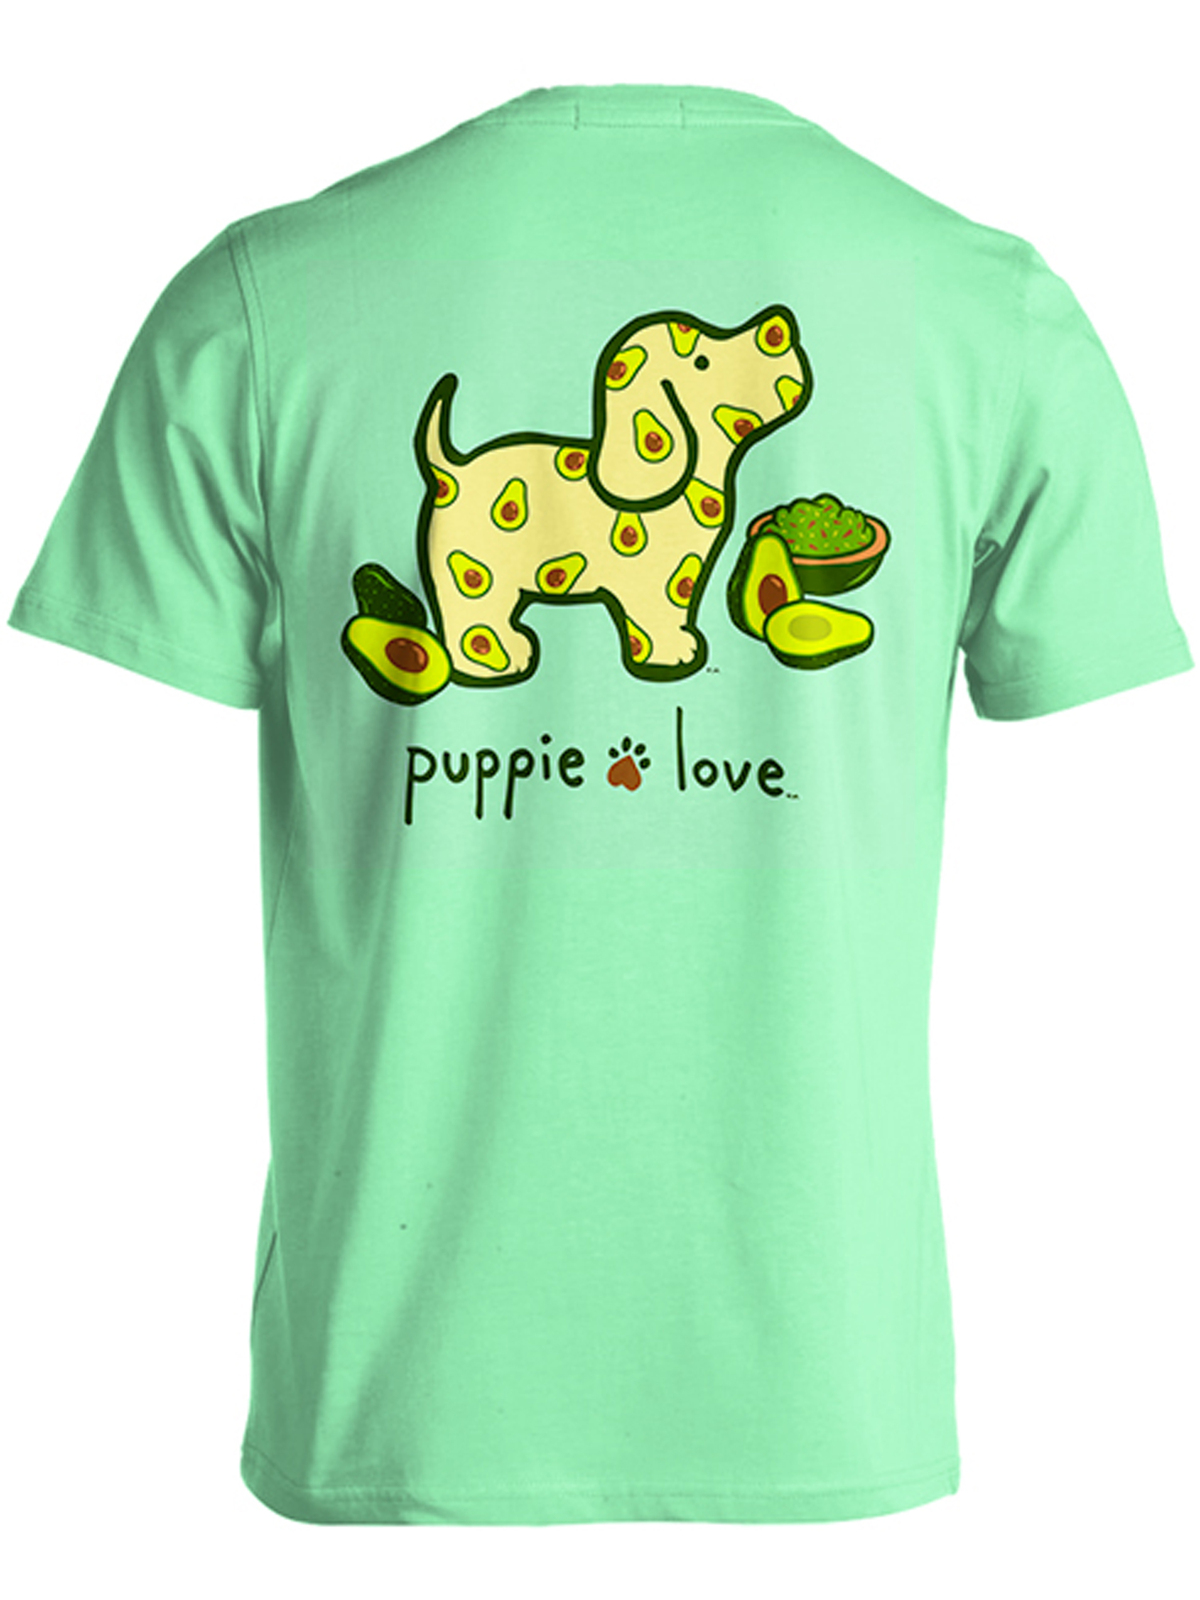 Puppie Love Rescue Dog Adult Unisex Short Sleeve Cotton Tee,Avocado Pup